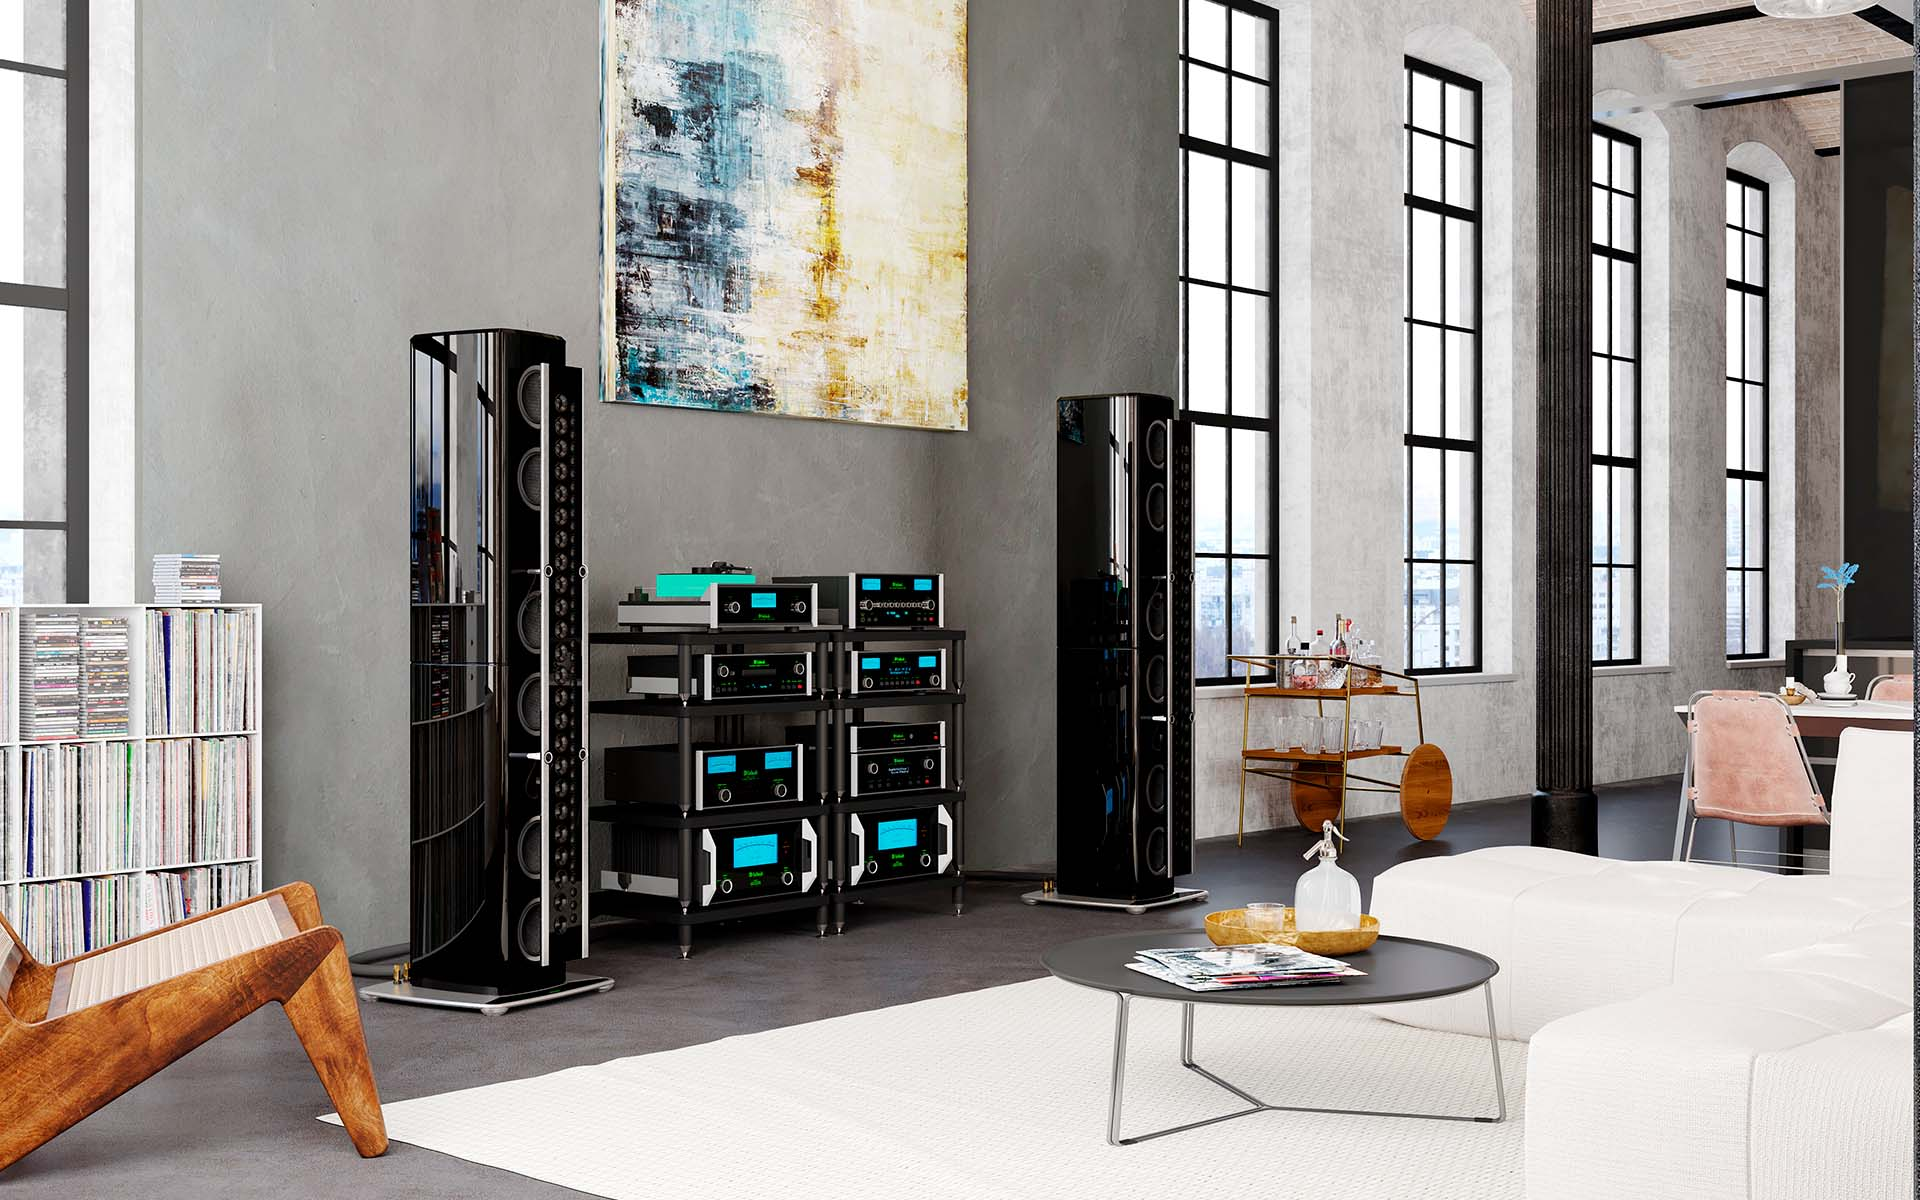 McIntosh SoHo I home audio music system